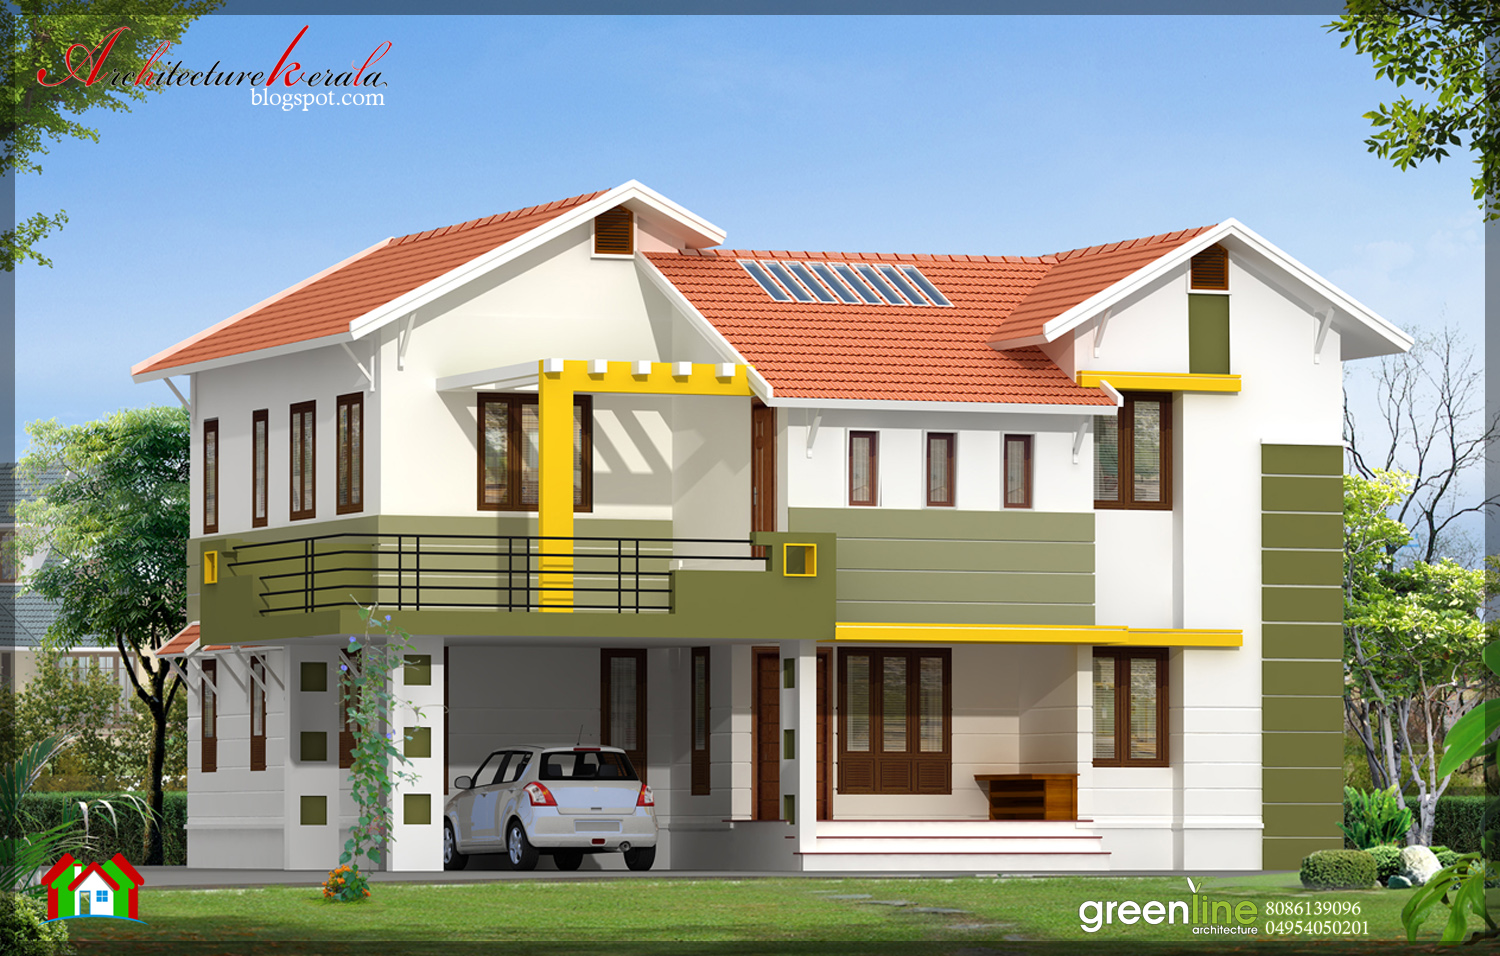 Architecture kerala 4 bhk contemporary style indian home for Home designs kerala style